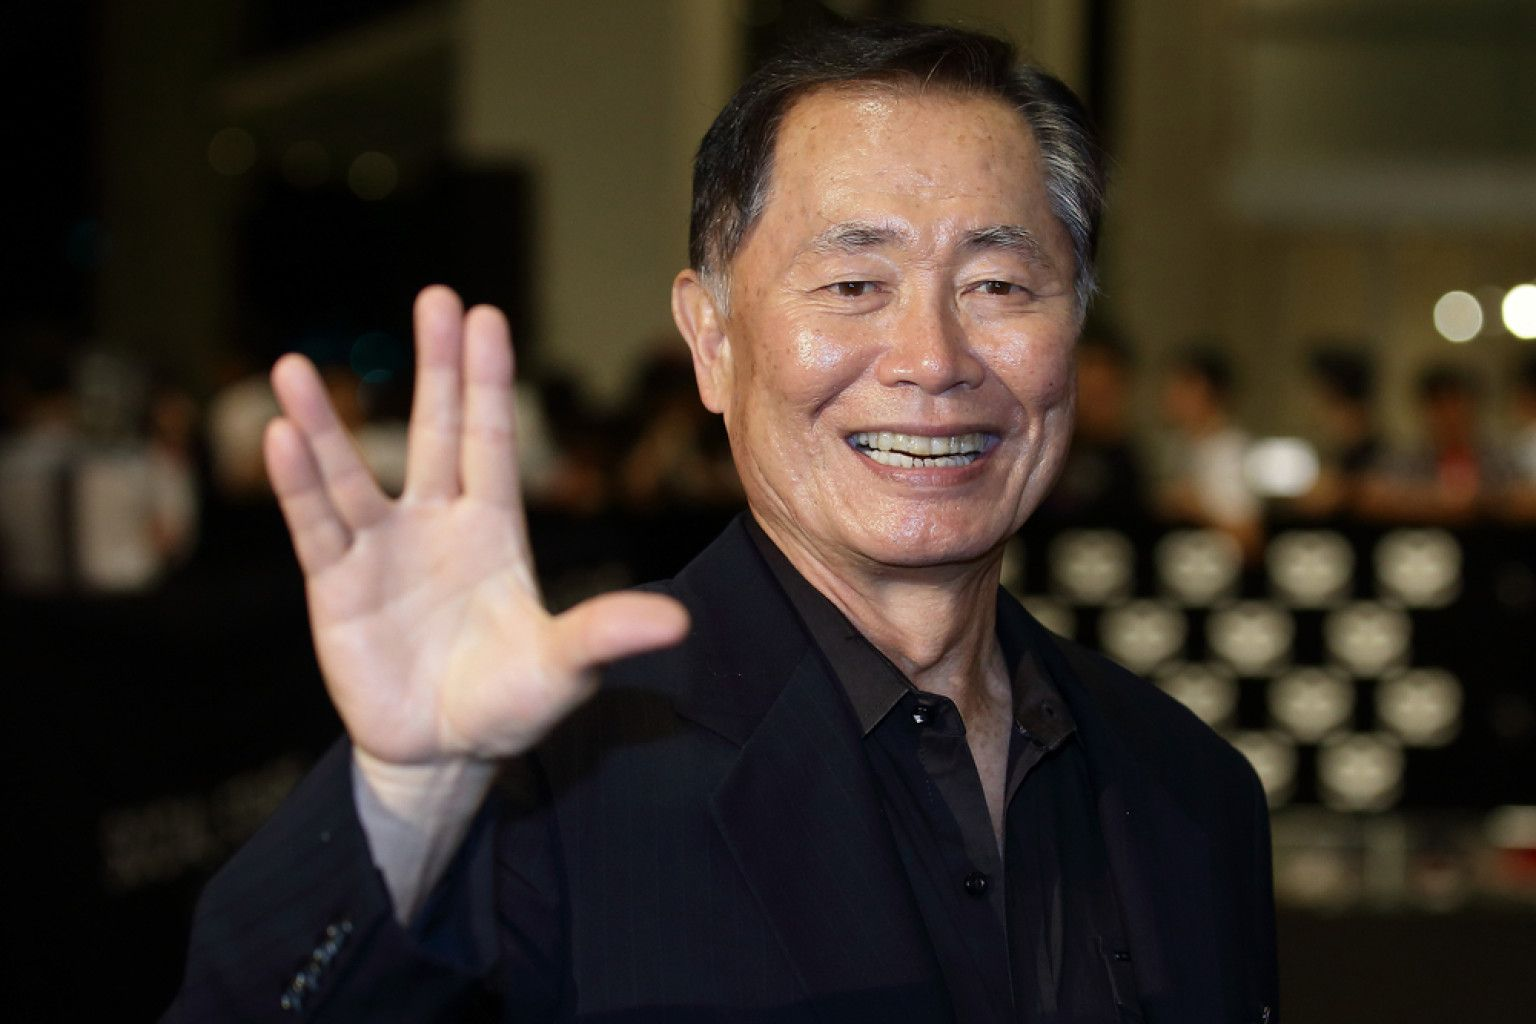 10-Celebrities-With-The-Best-Social-Media-Skills-george-takei The 10 Most Popular Celebrities on Social Media The 10 Most Popular Celebrities on Social Media o GEORGE TAKEI facebook